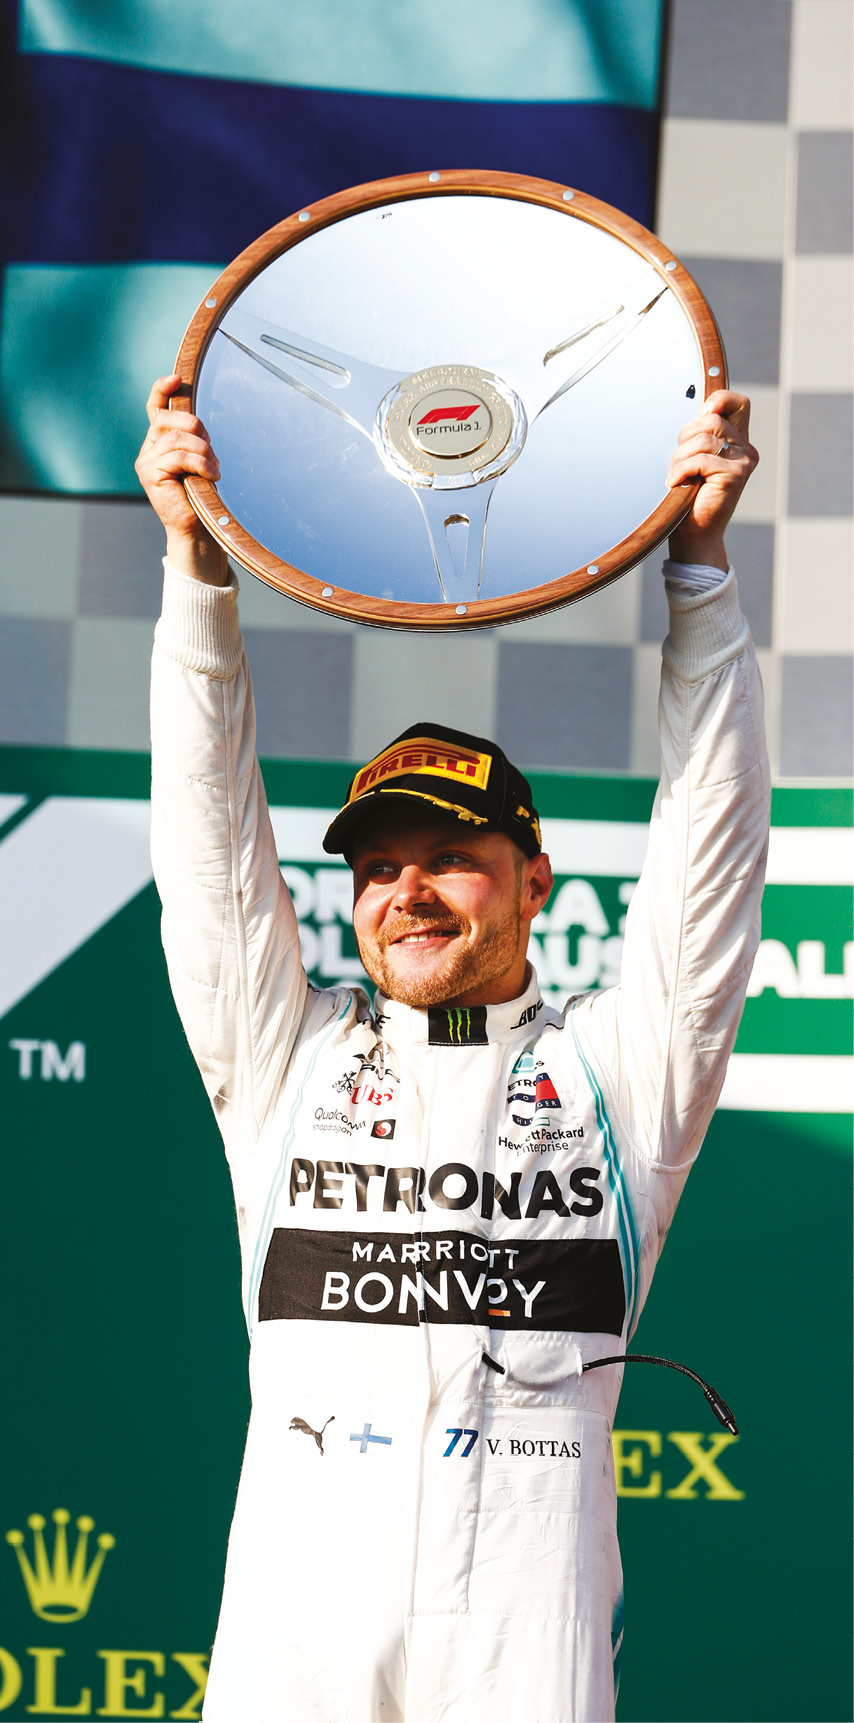 Victory in Australia signalled Bottas's strong start to the year, but things have dropped off since